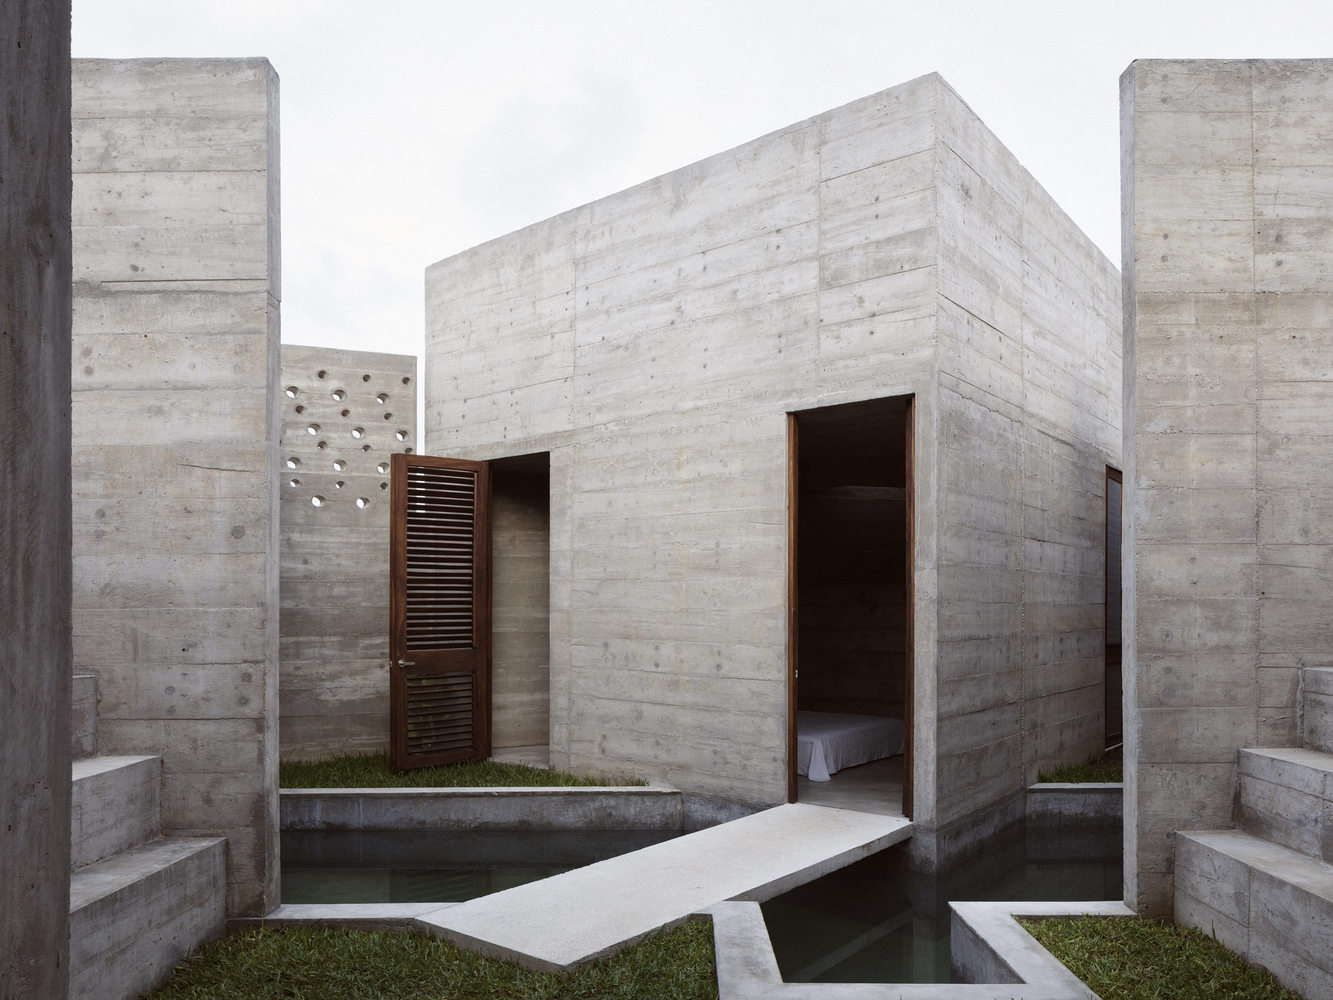 Concrete house with narrow concrete walkway in a courtyard.